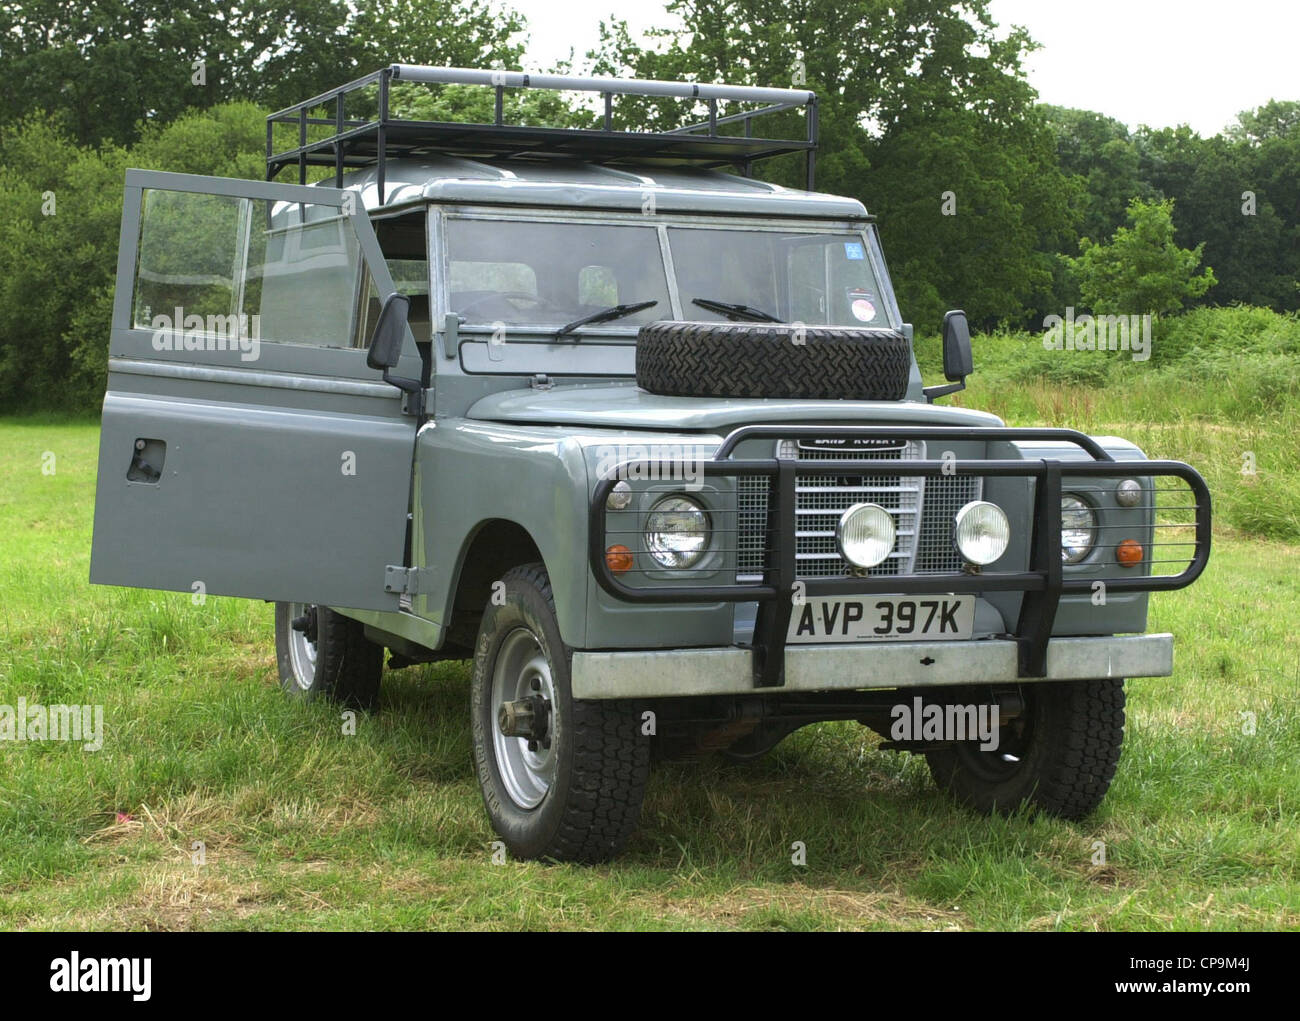 landrover land rover this is the series 3 model made in 1971 it is stock photo royalty free. Black Bedroom Furniture Sets. Home Design Ideas